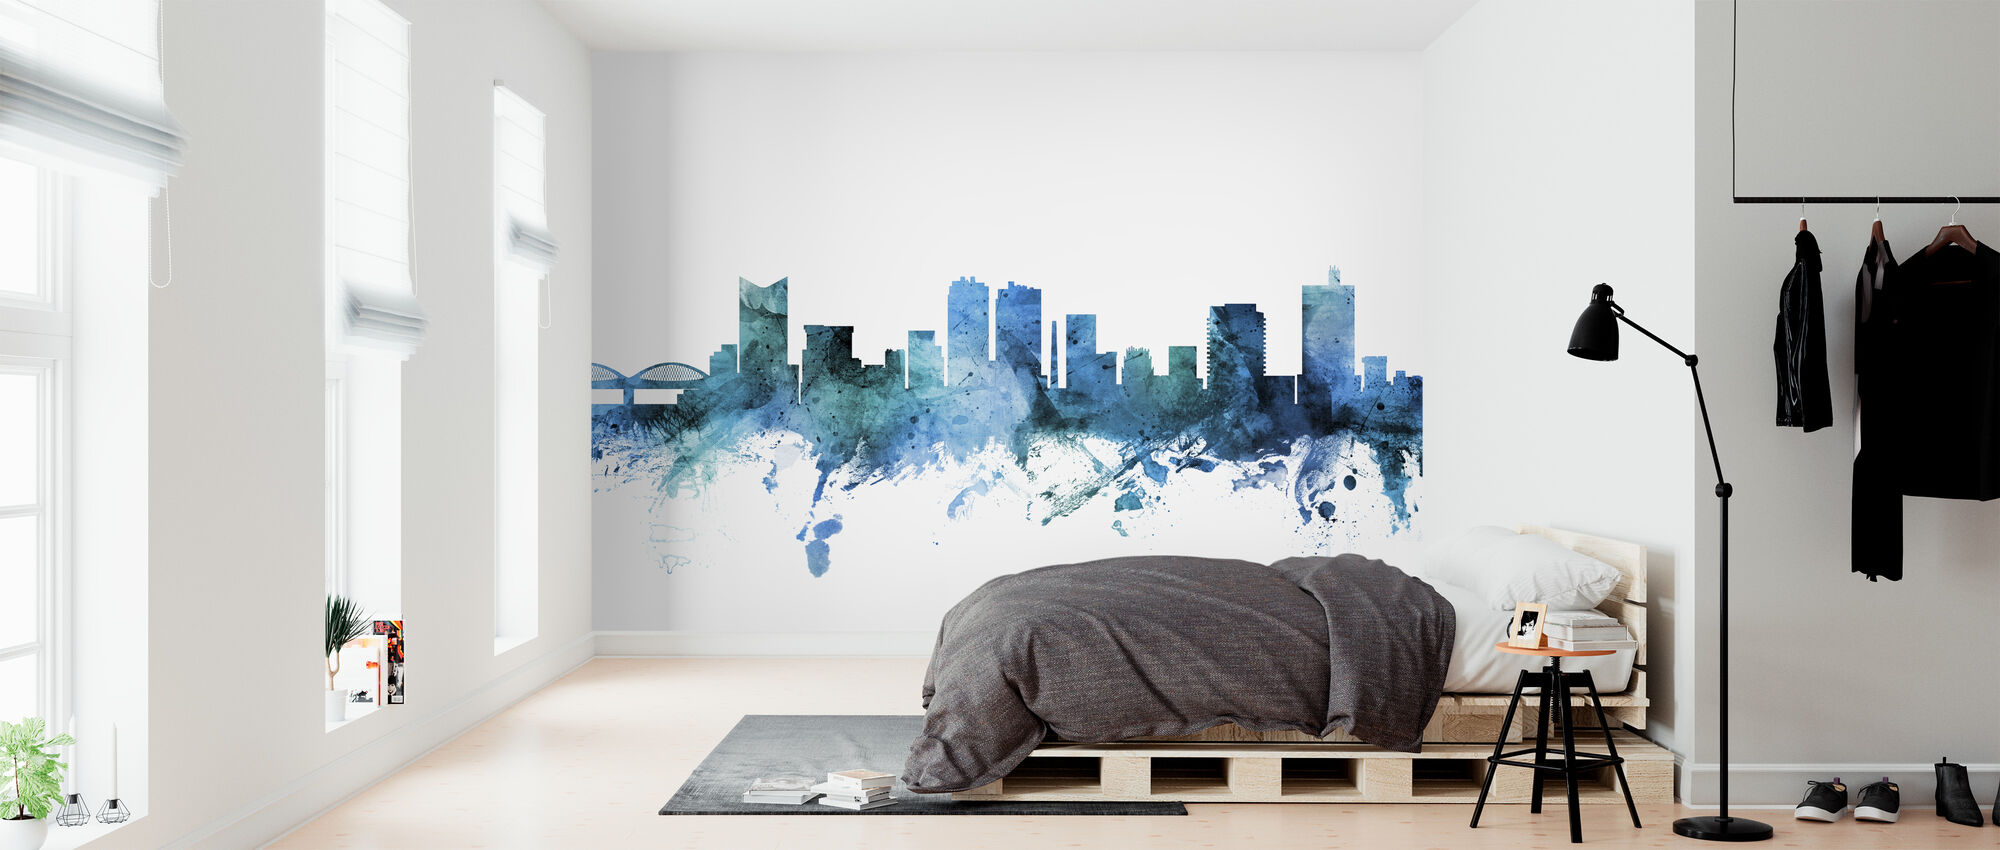 Fort Worth Texas Skyline - Wallpaper - Bedroom